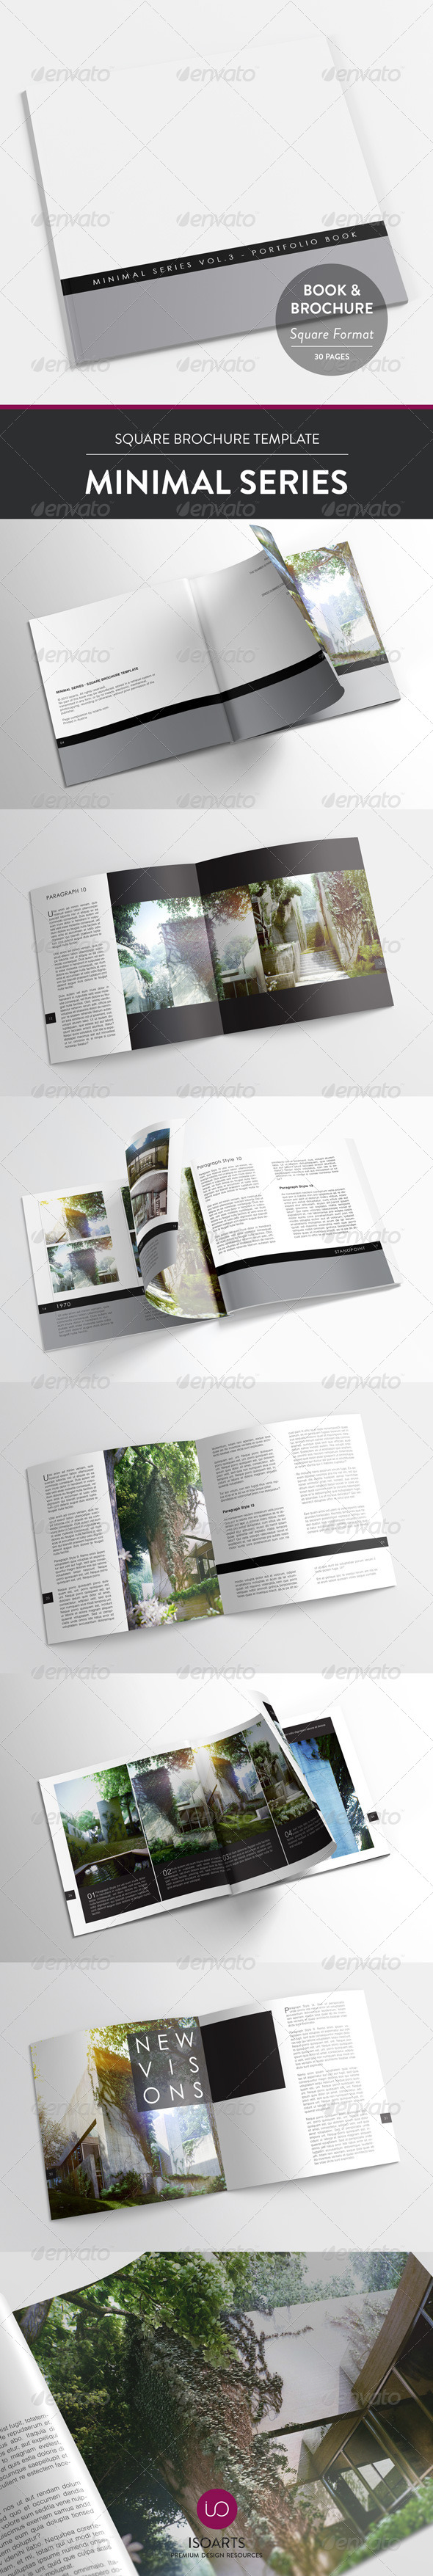 Minimal Series • Square Brochure Template - Print Templates